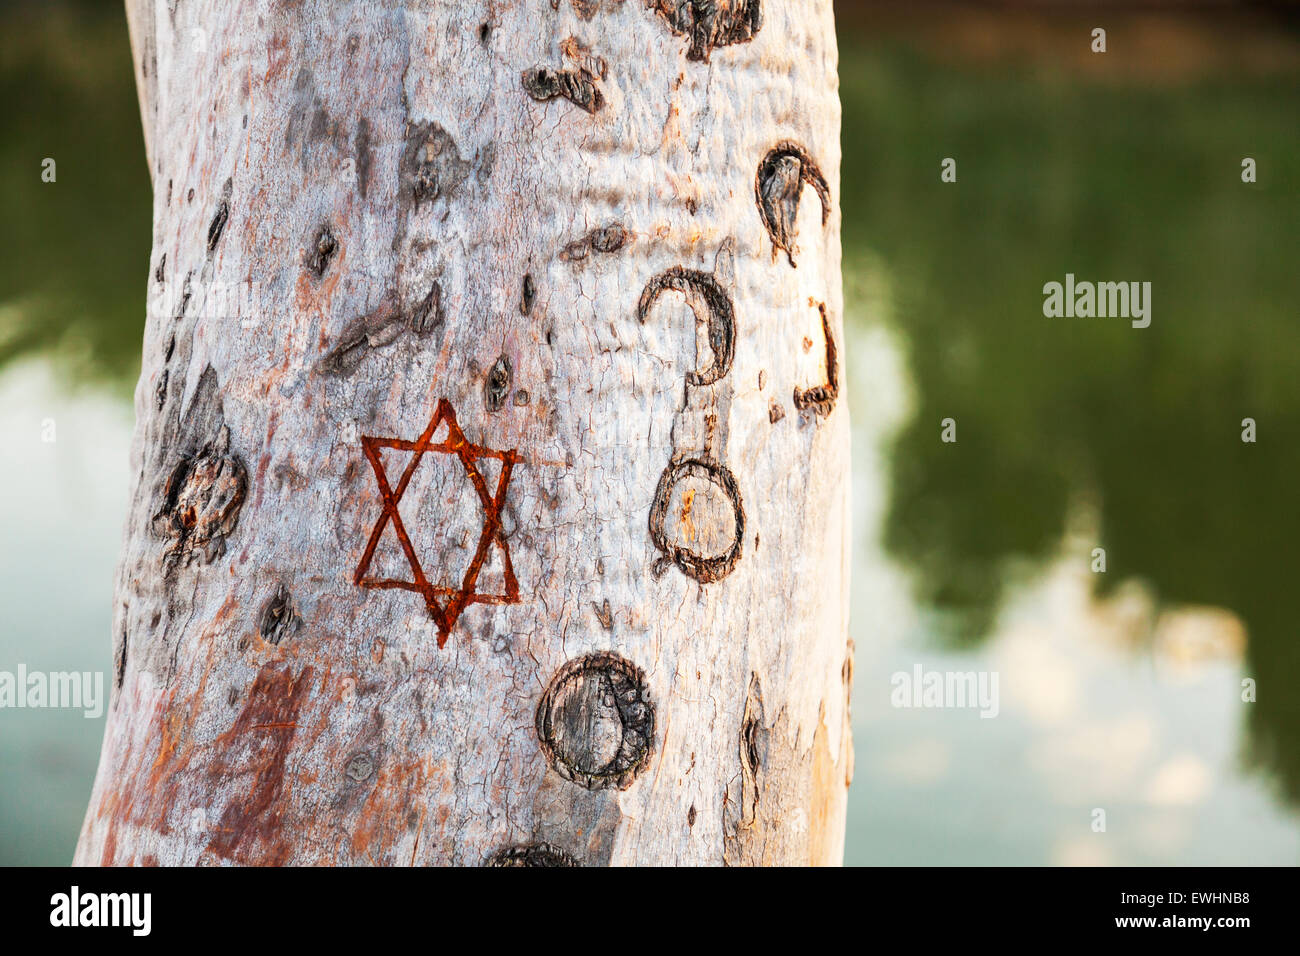 Pentagram star of David carved in to tree trunk symbol emblem meaning Jew Jewish black magic - Stock Image